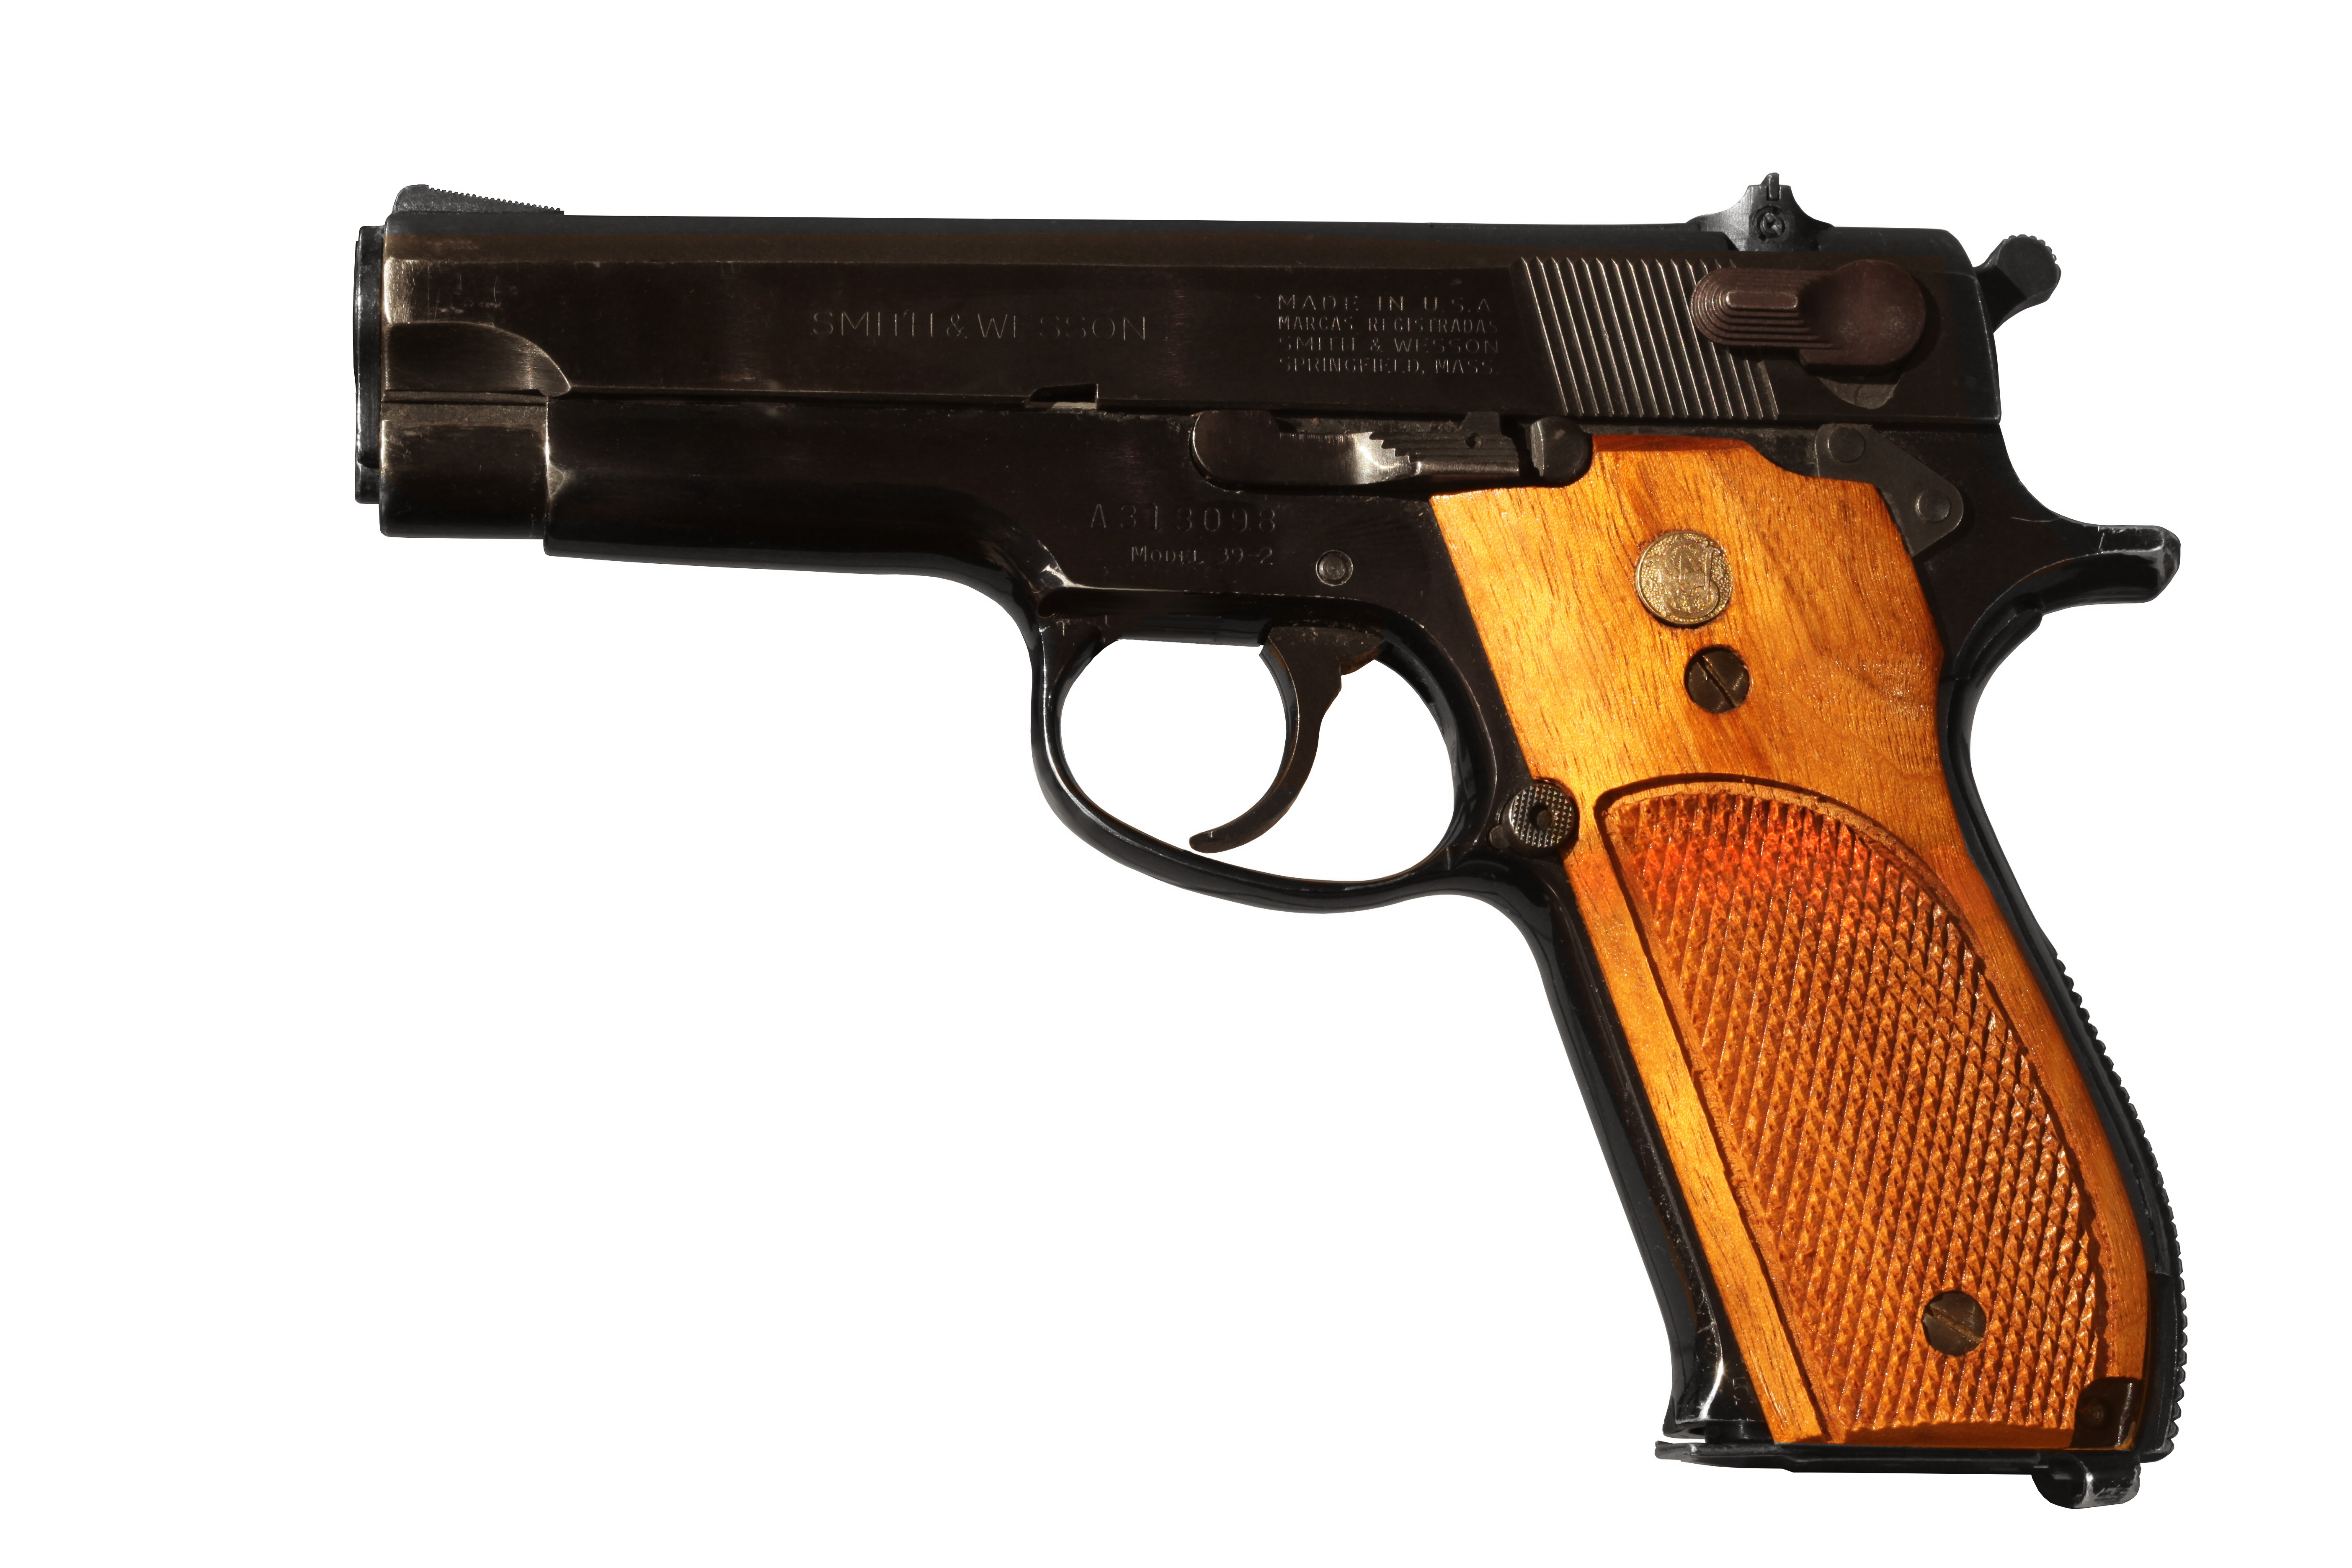 http://upload.wikimedia.org/wikipedia/commons/0/08/Smith_and_Wesson_model_39_IMG_3063.jpg